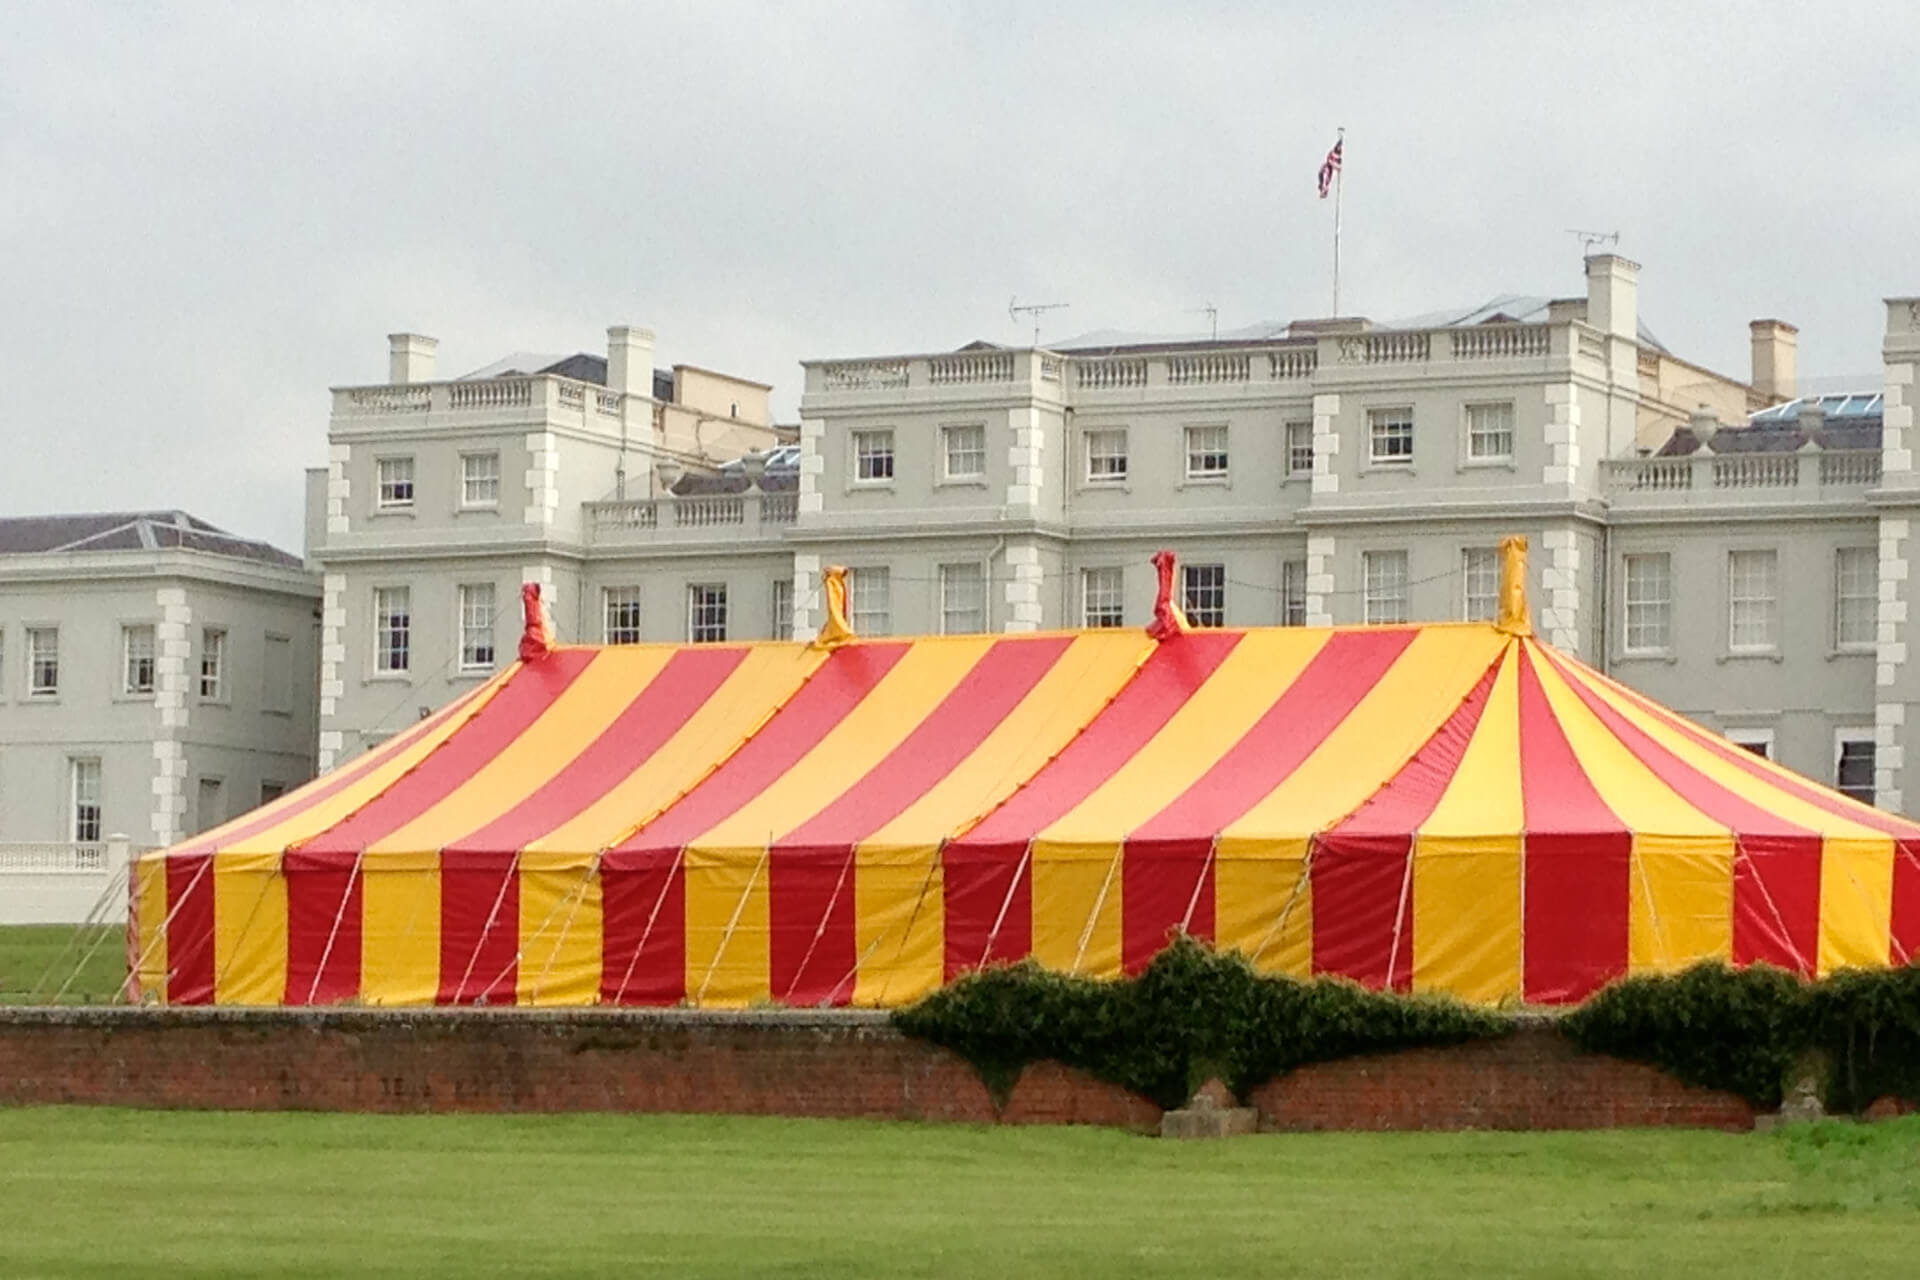 King Size marquee is red and yellow